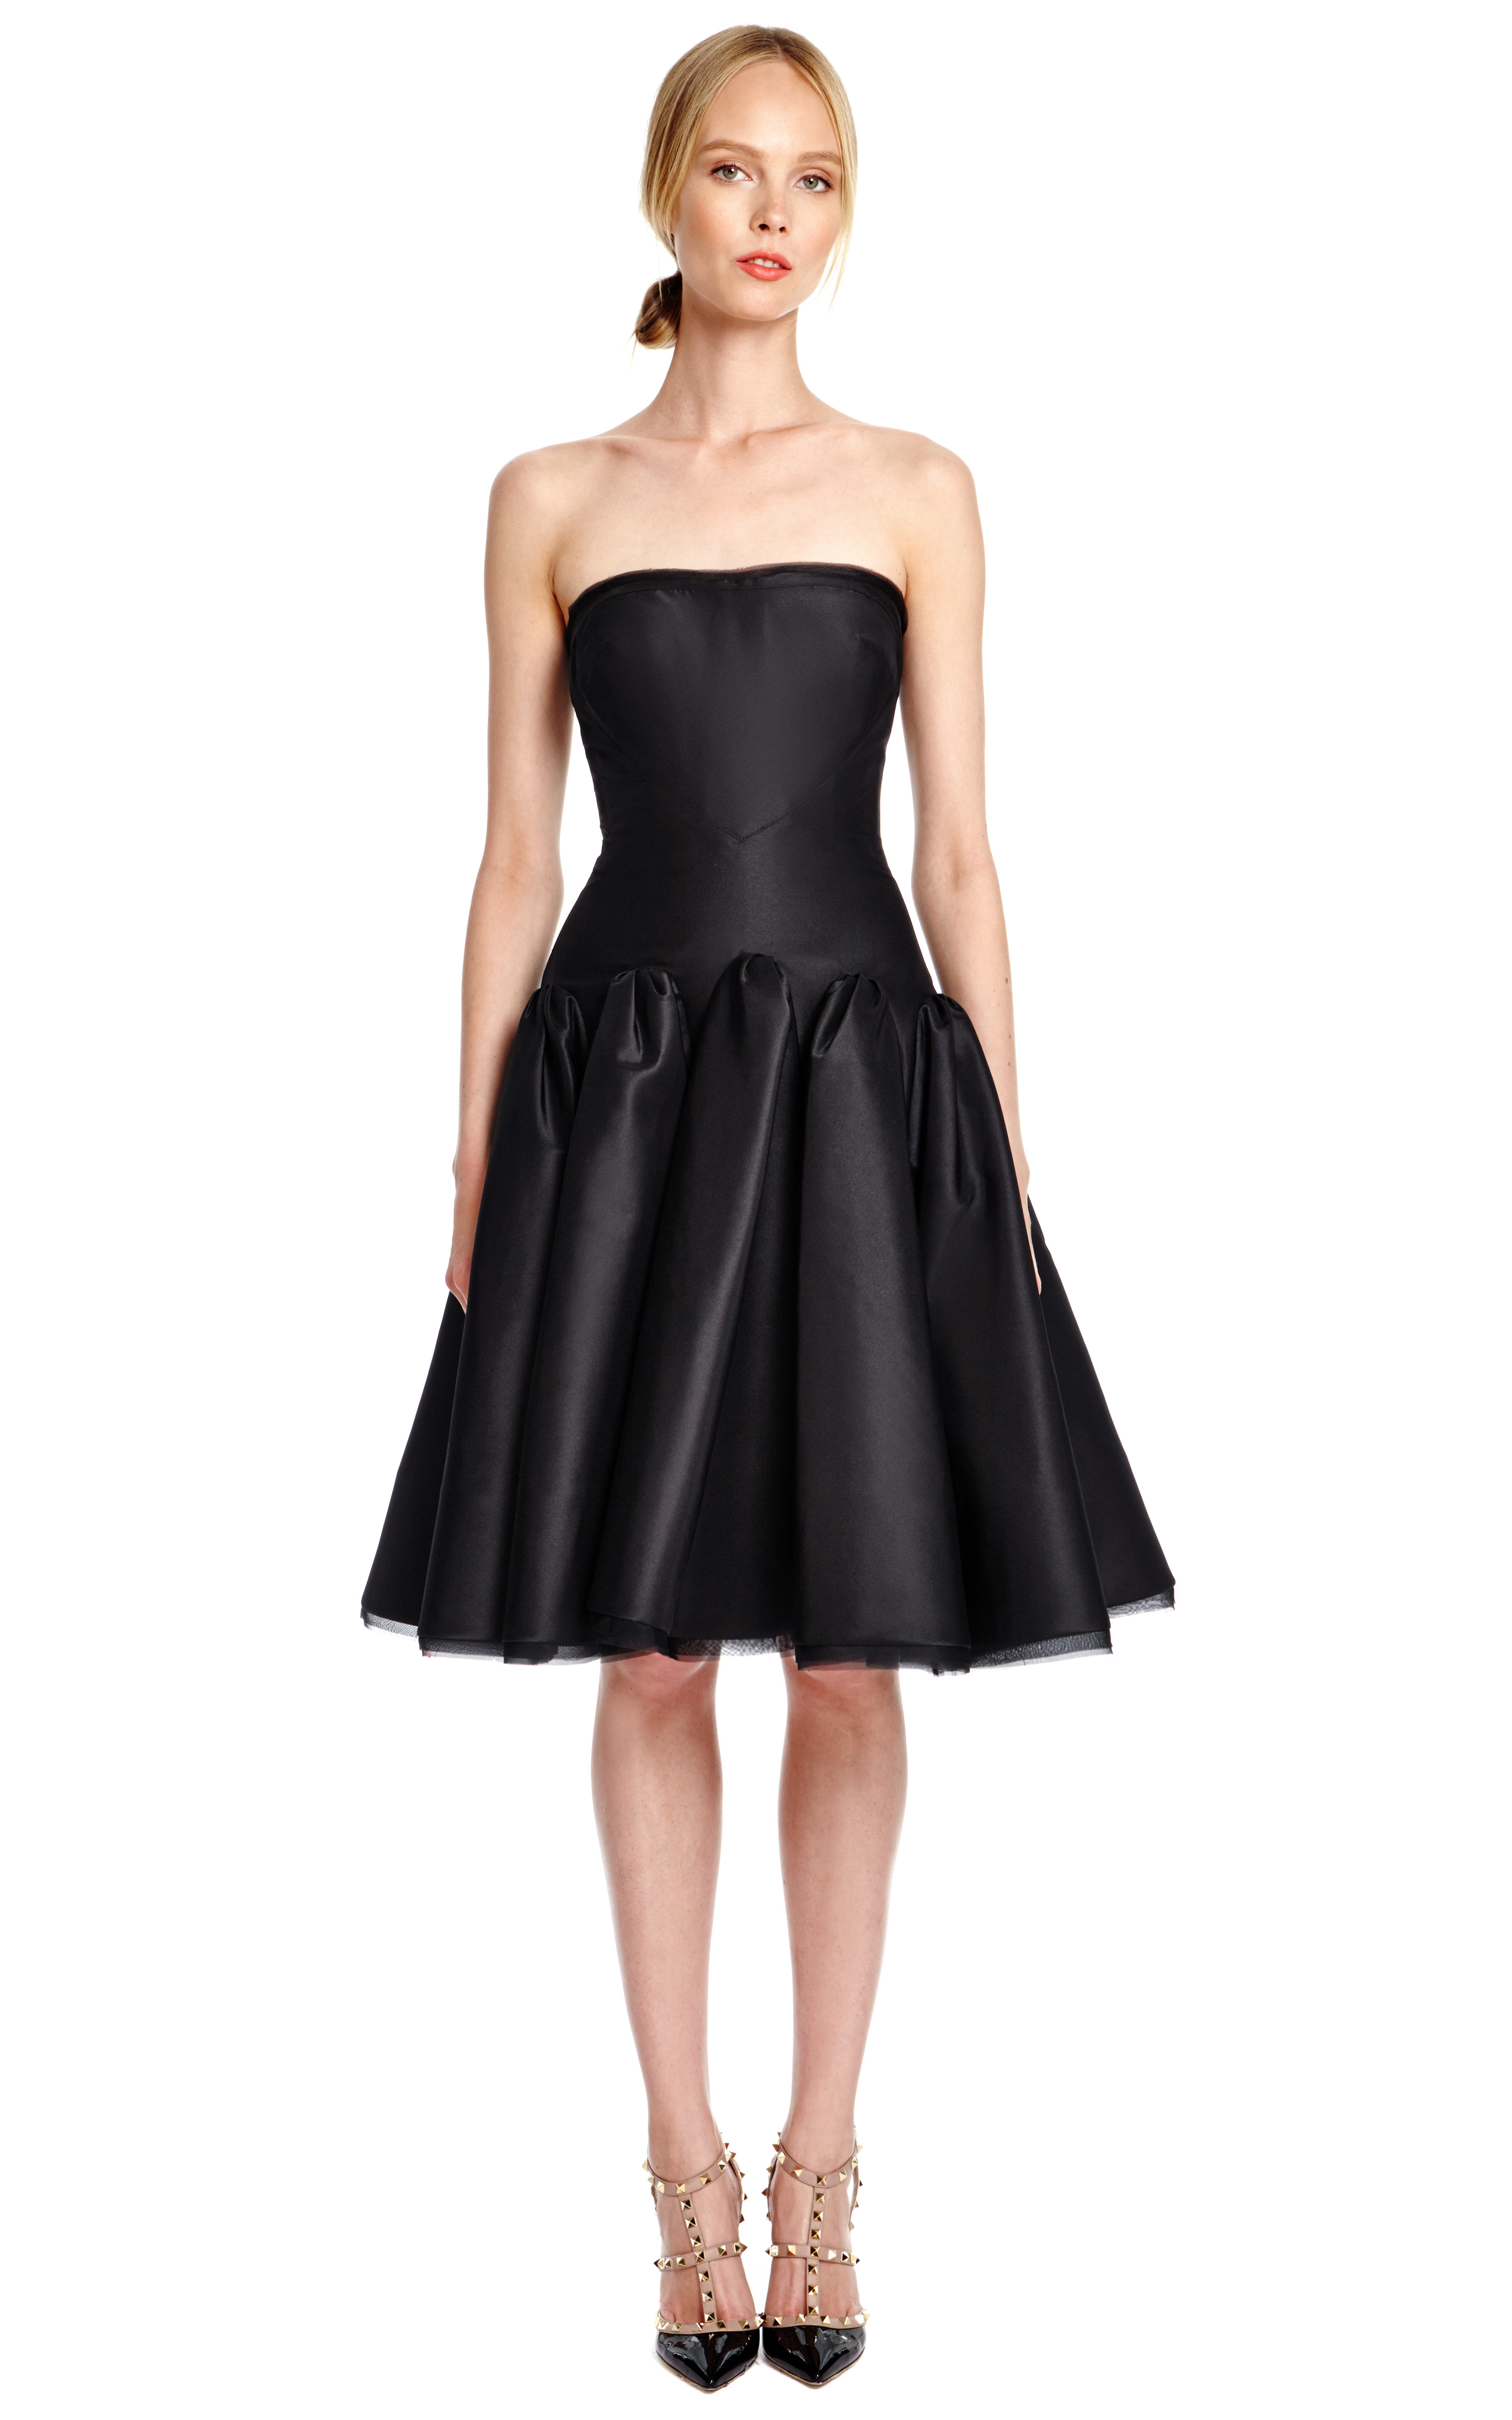 Lyst - Zac Posen Silk Faille Strapless Cocktail Dress in Black